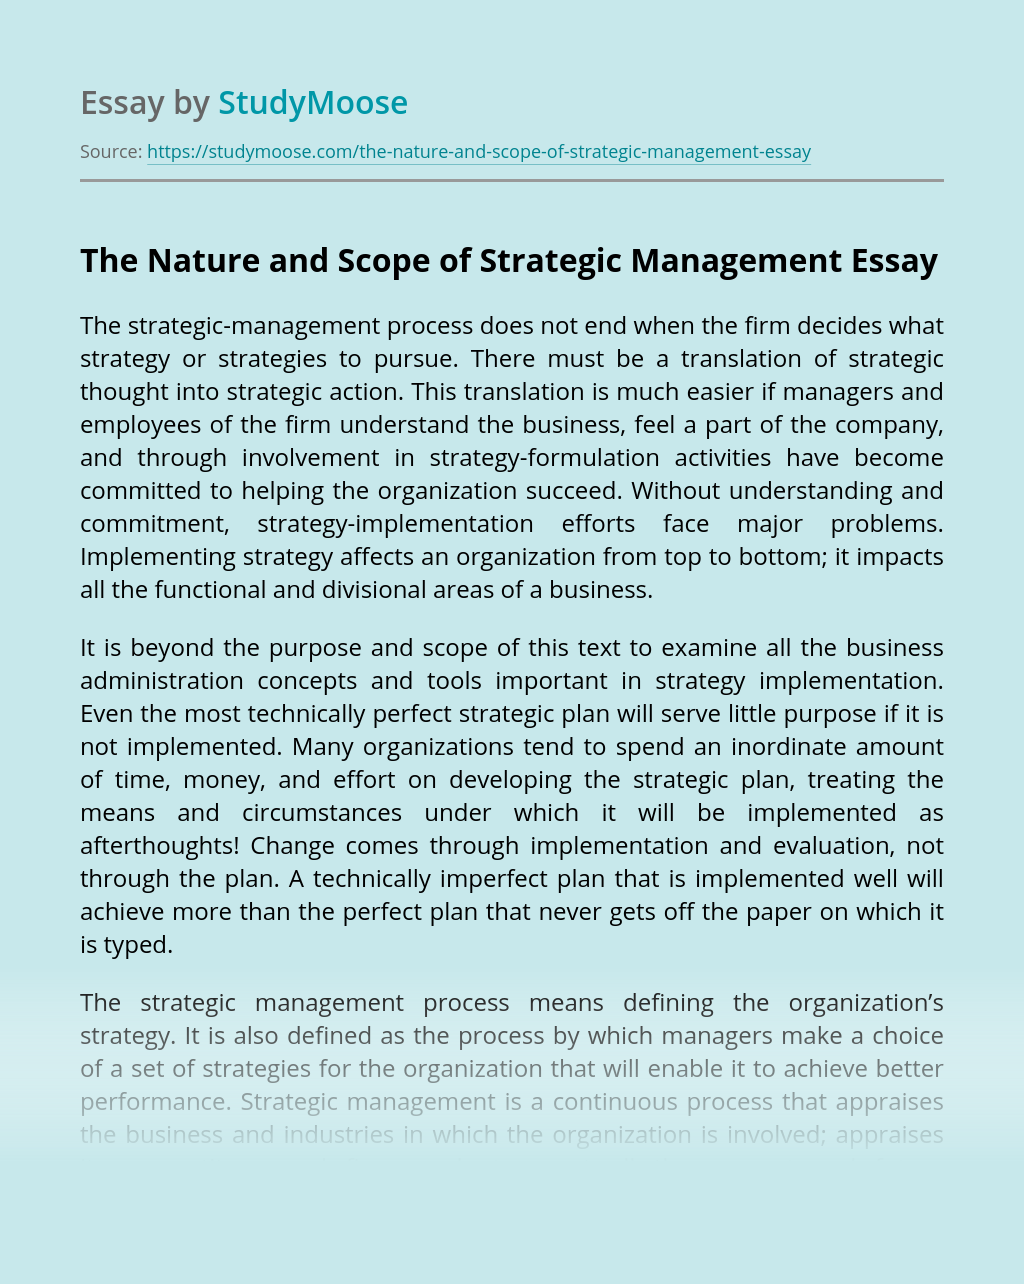 The Nature and Scope of Strategic Management